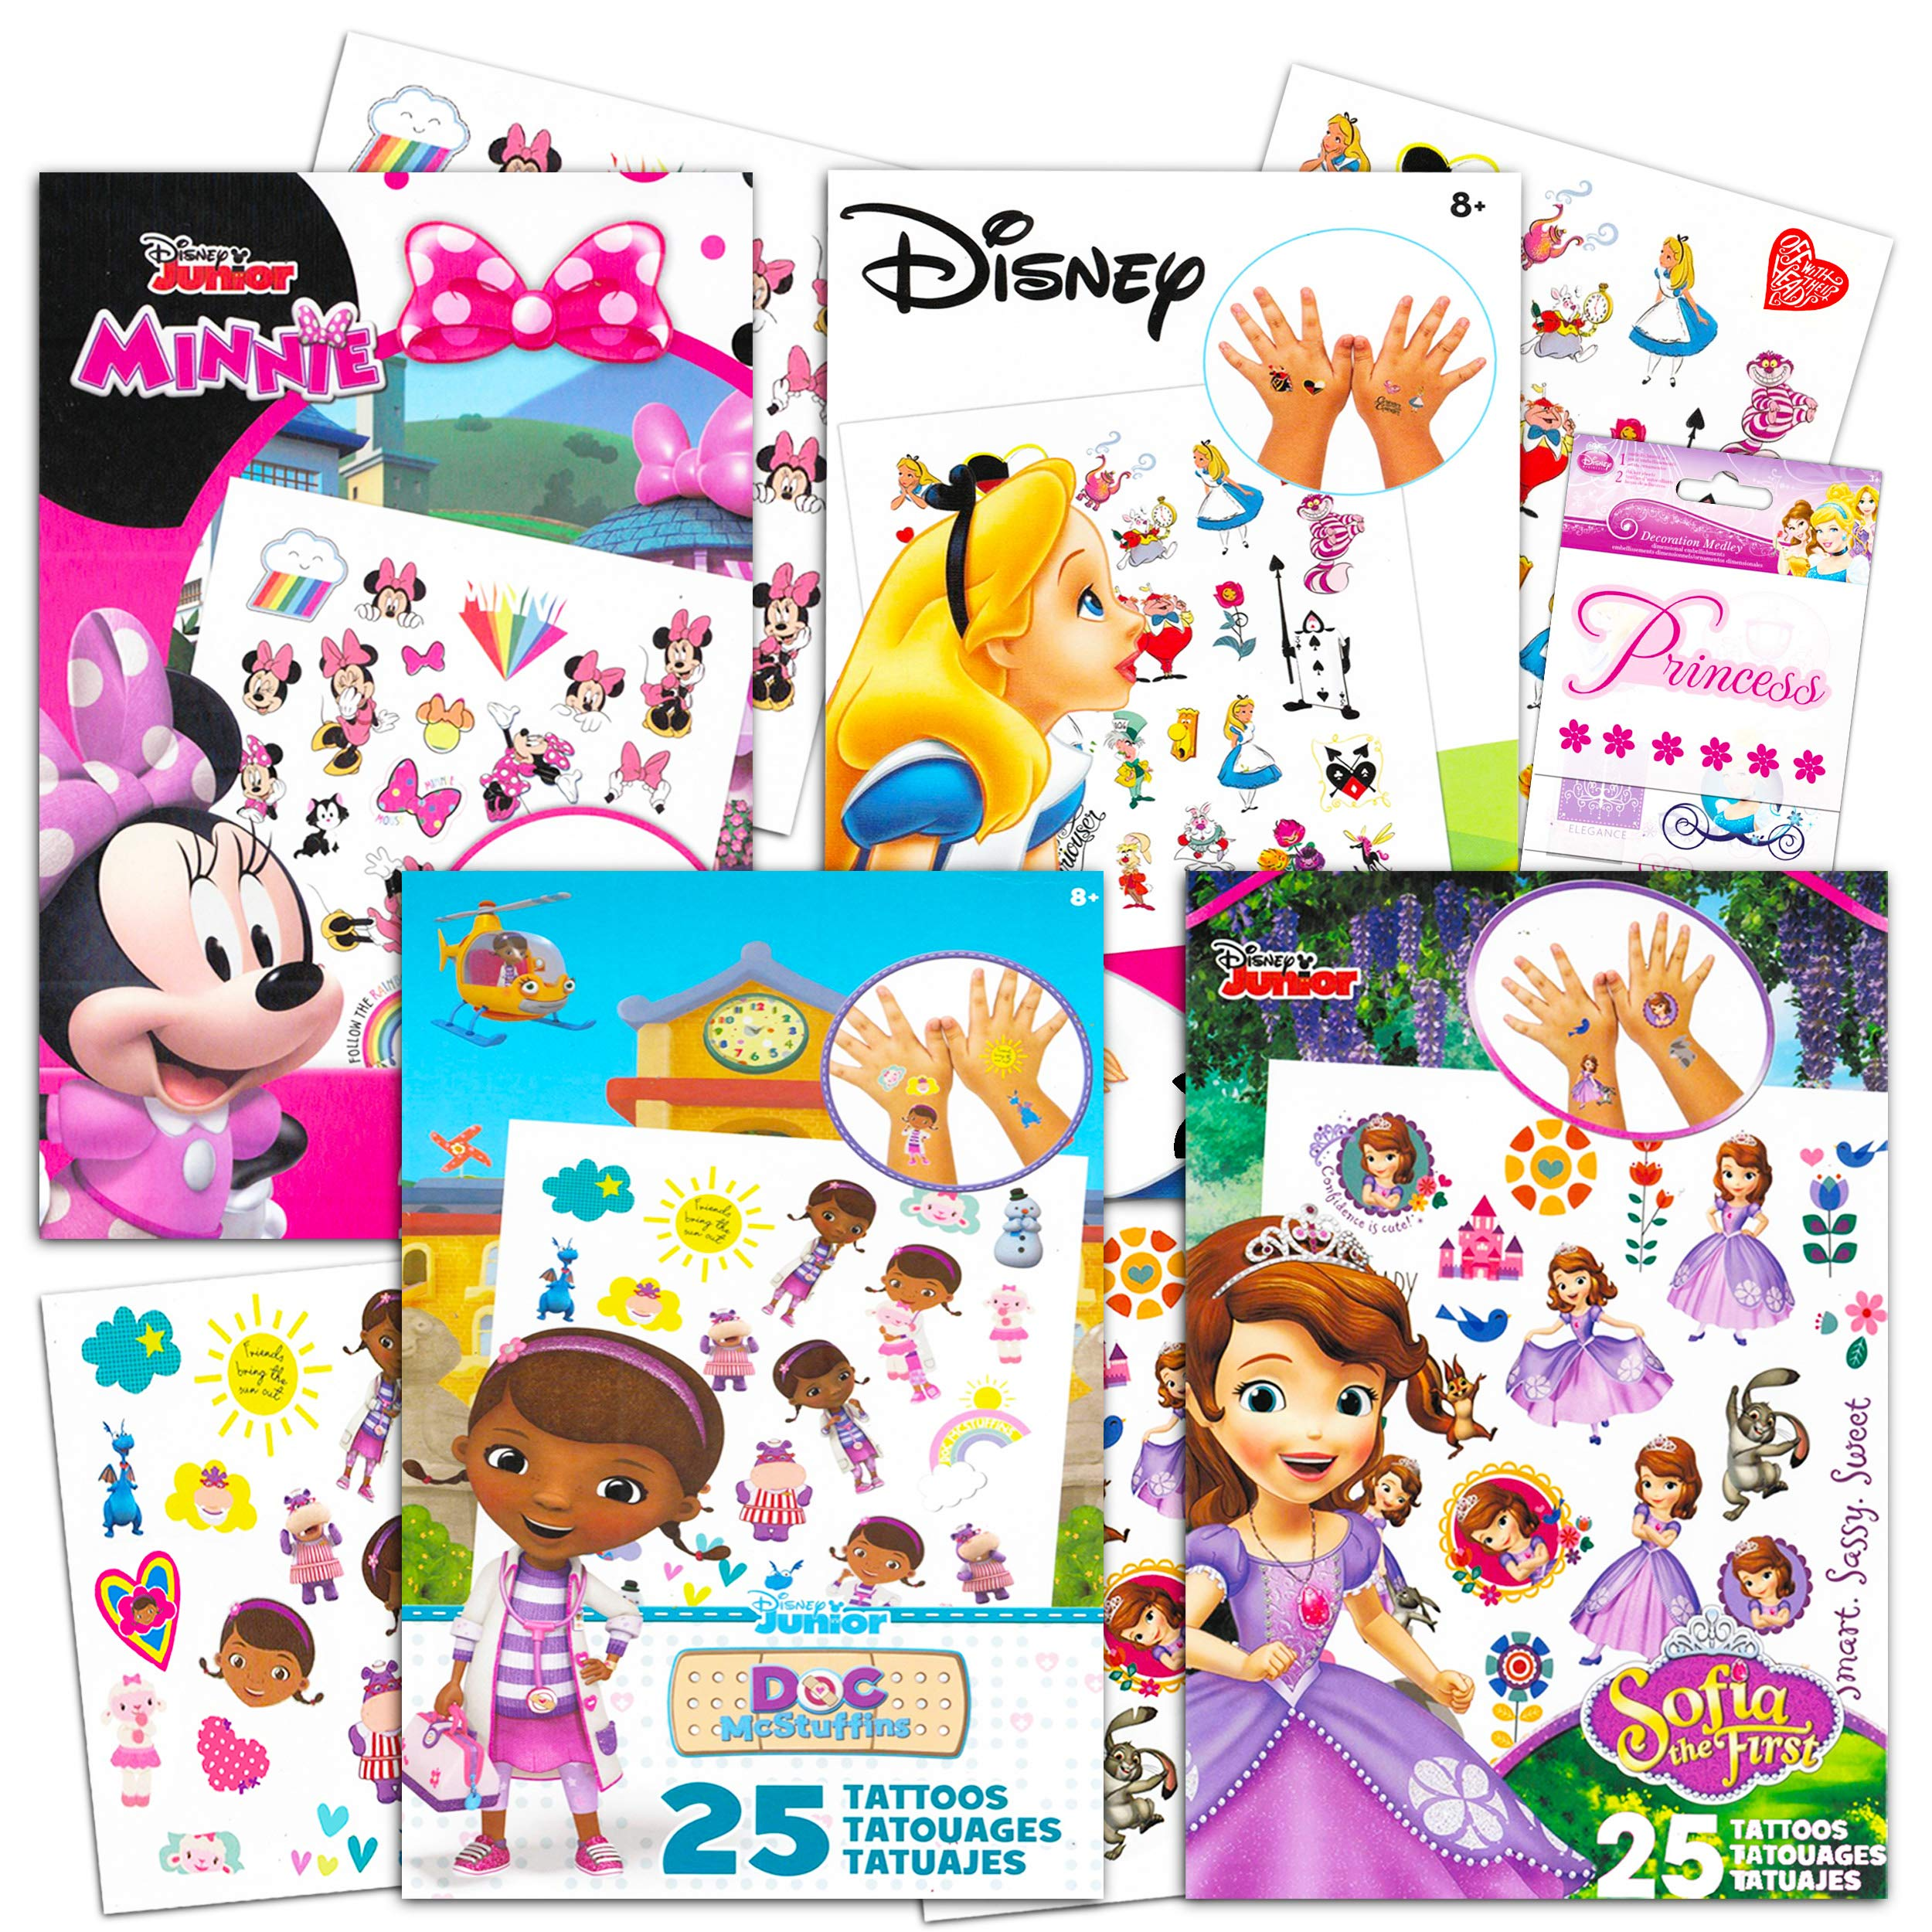 Disney Junior Tattoos Party Favor Set for Girls -- 100 Temporary Tattoos Featuring Minnie Mouse, Sofia The First, Doc McStuffins, Alice in Wonderland with Bonus Disney Princess Stickers